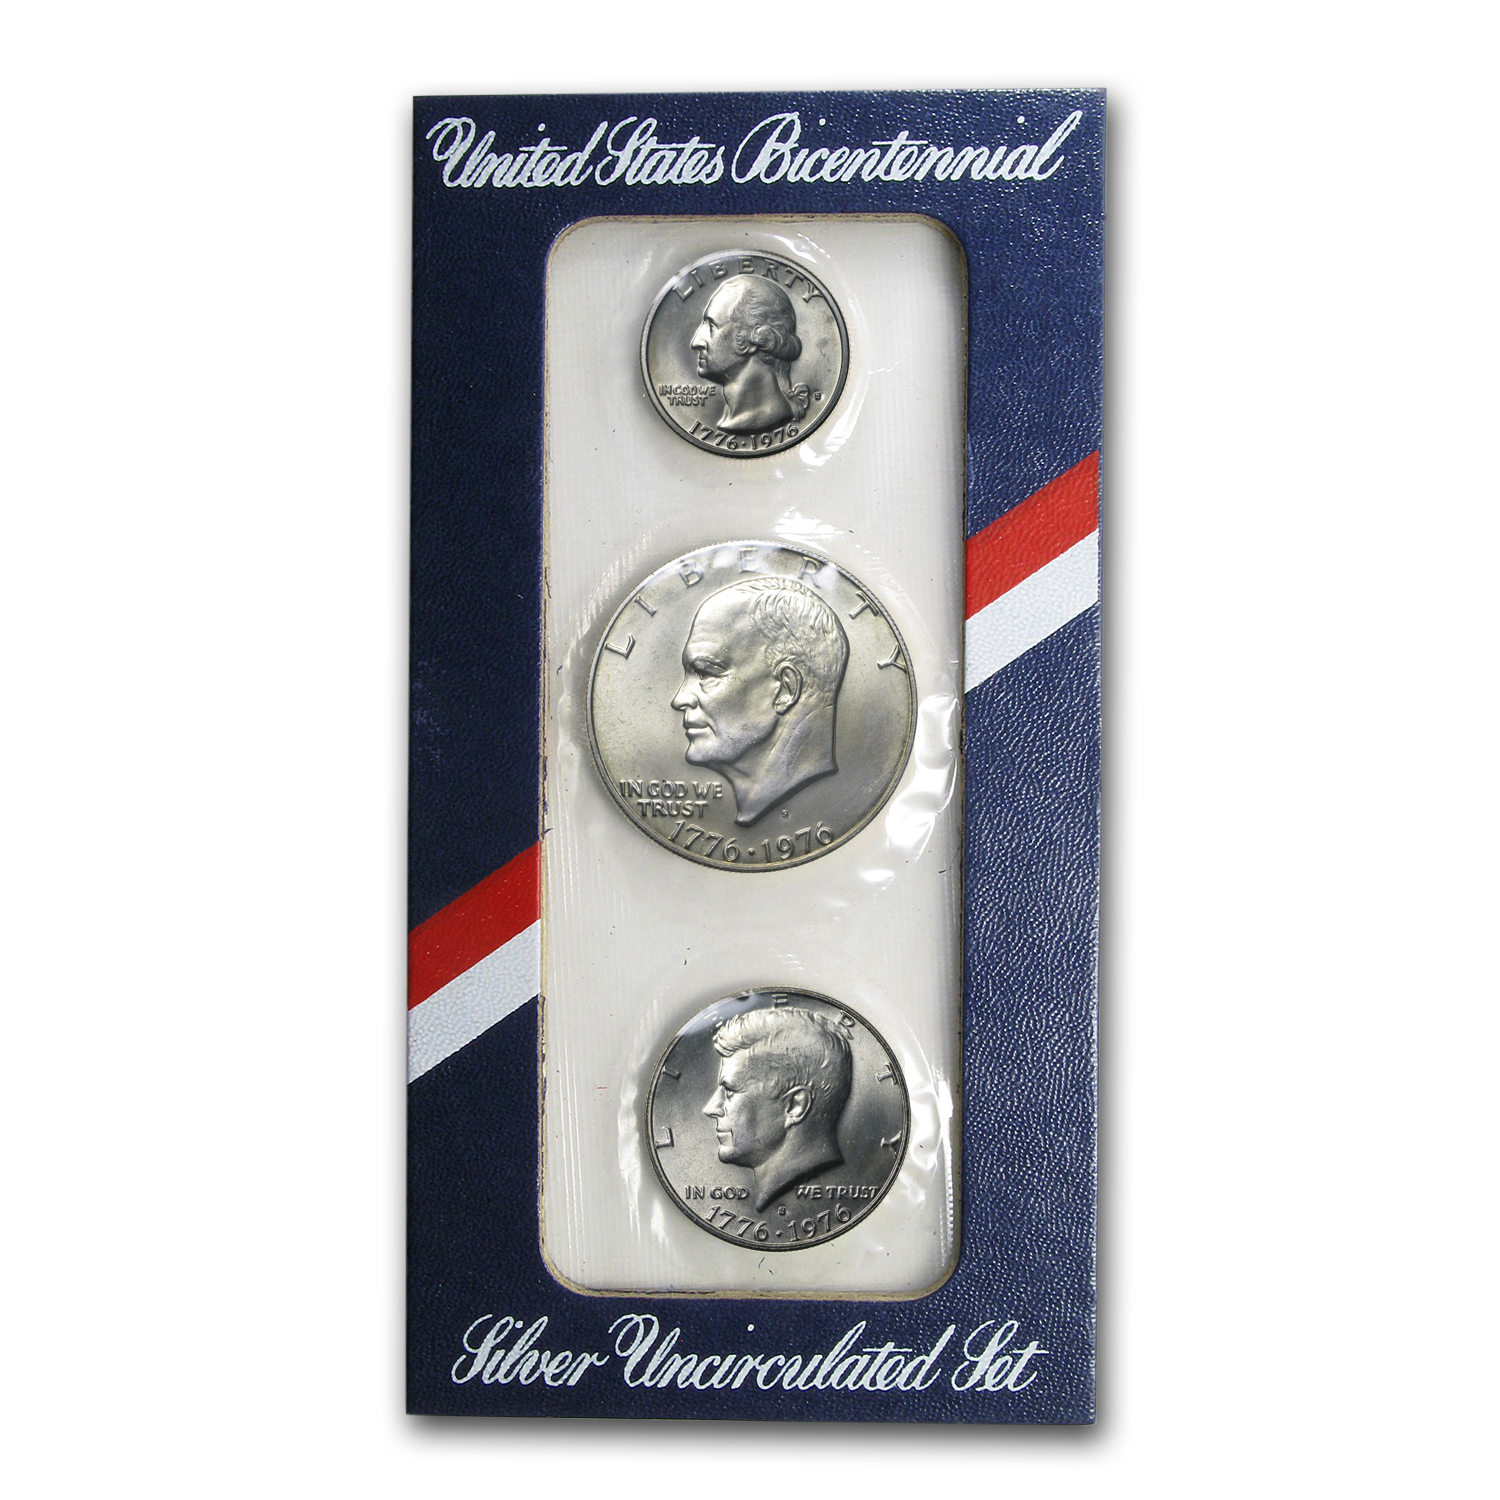 1976 U.S. Mint Bicentennial Uncirculated Set (3pc. Silver)